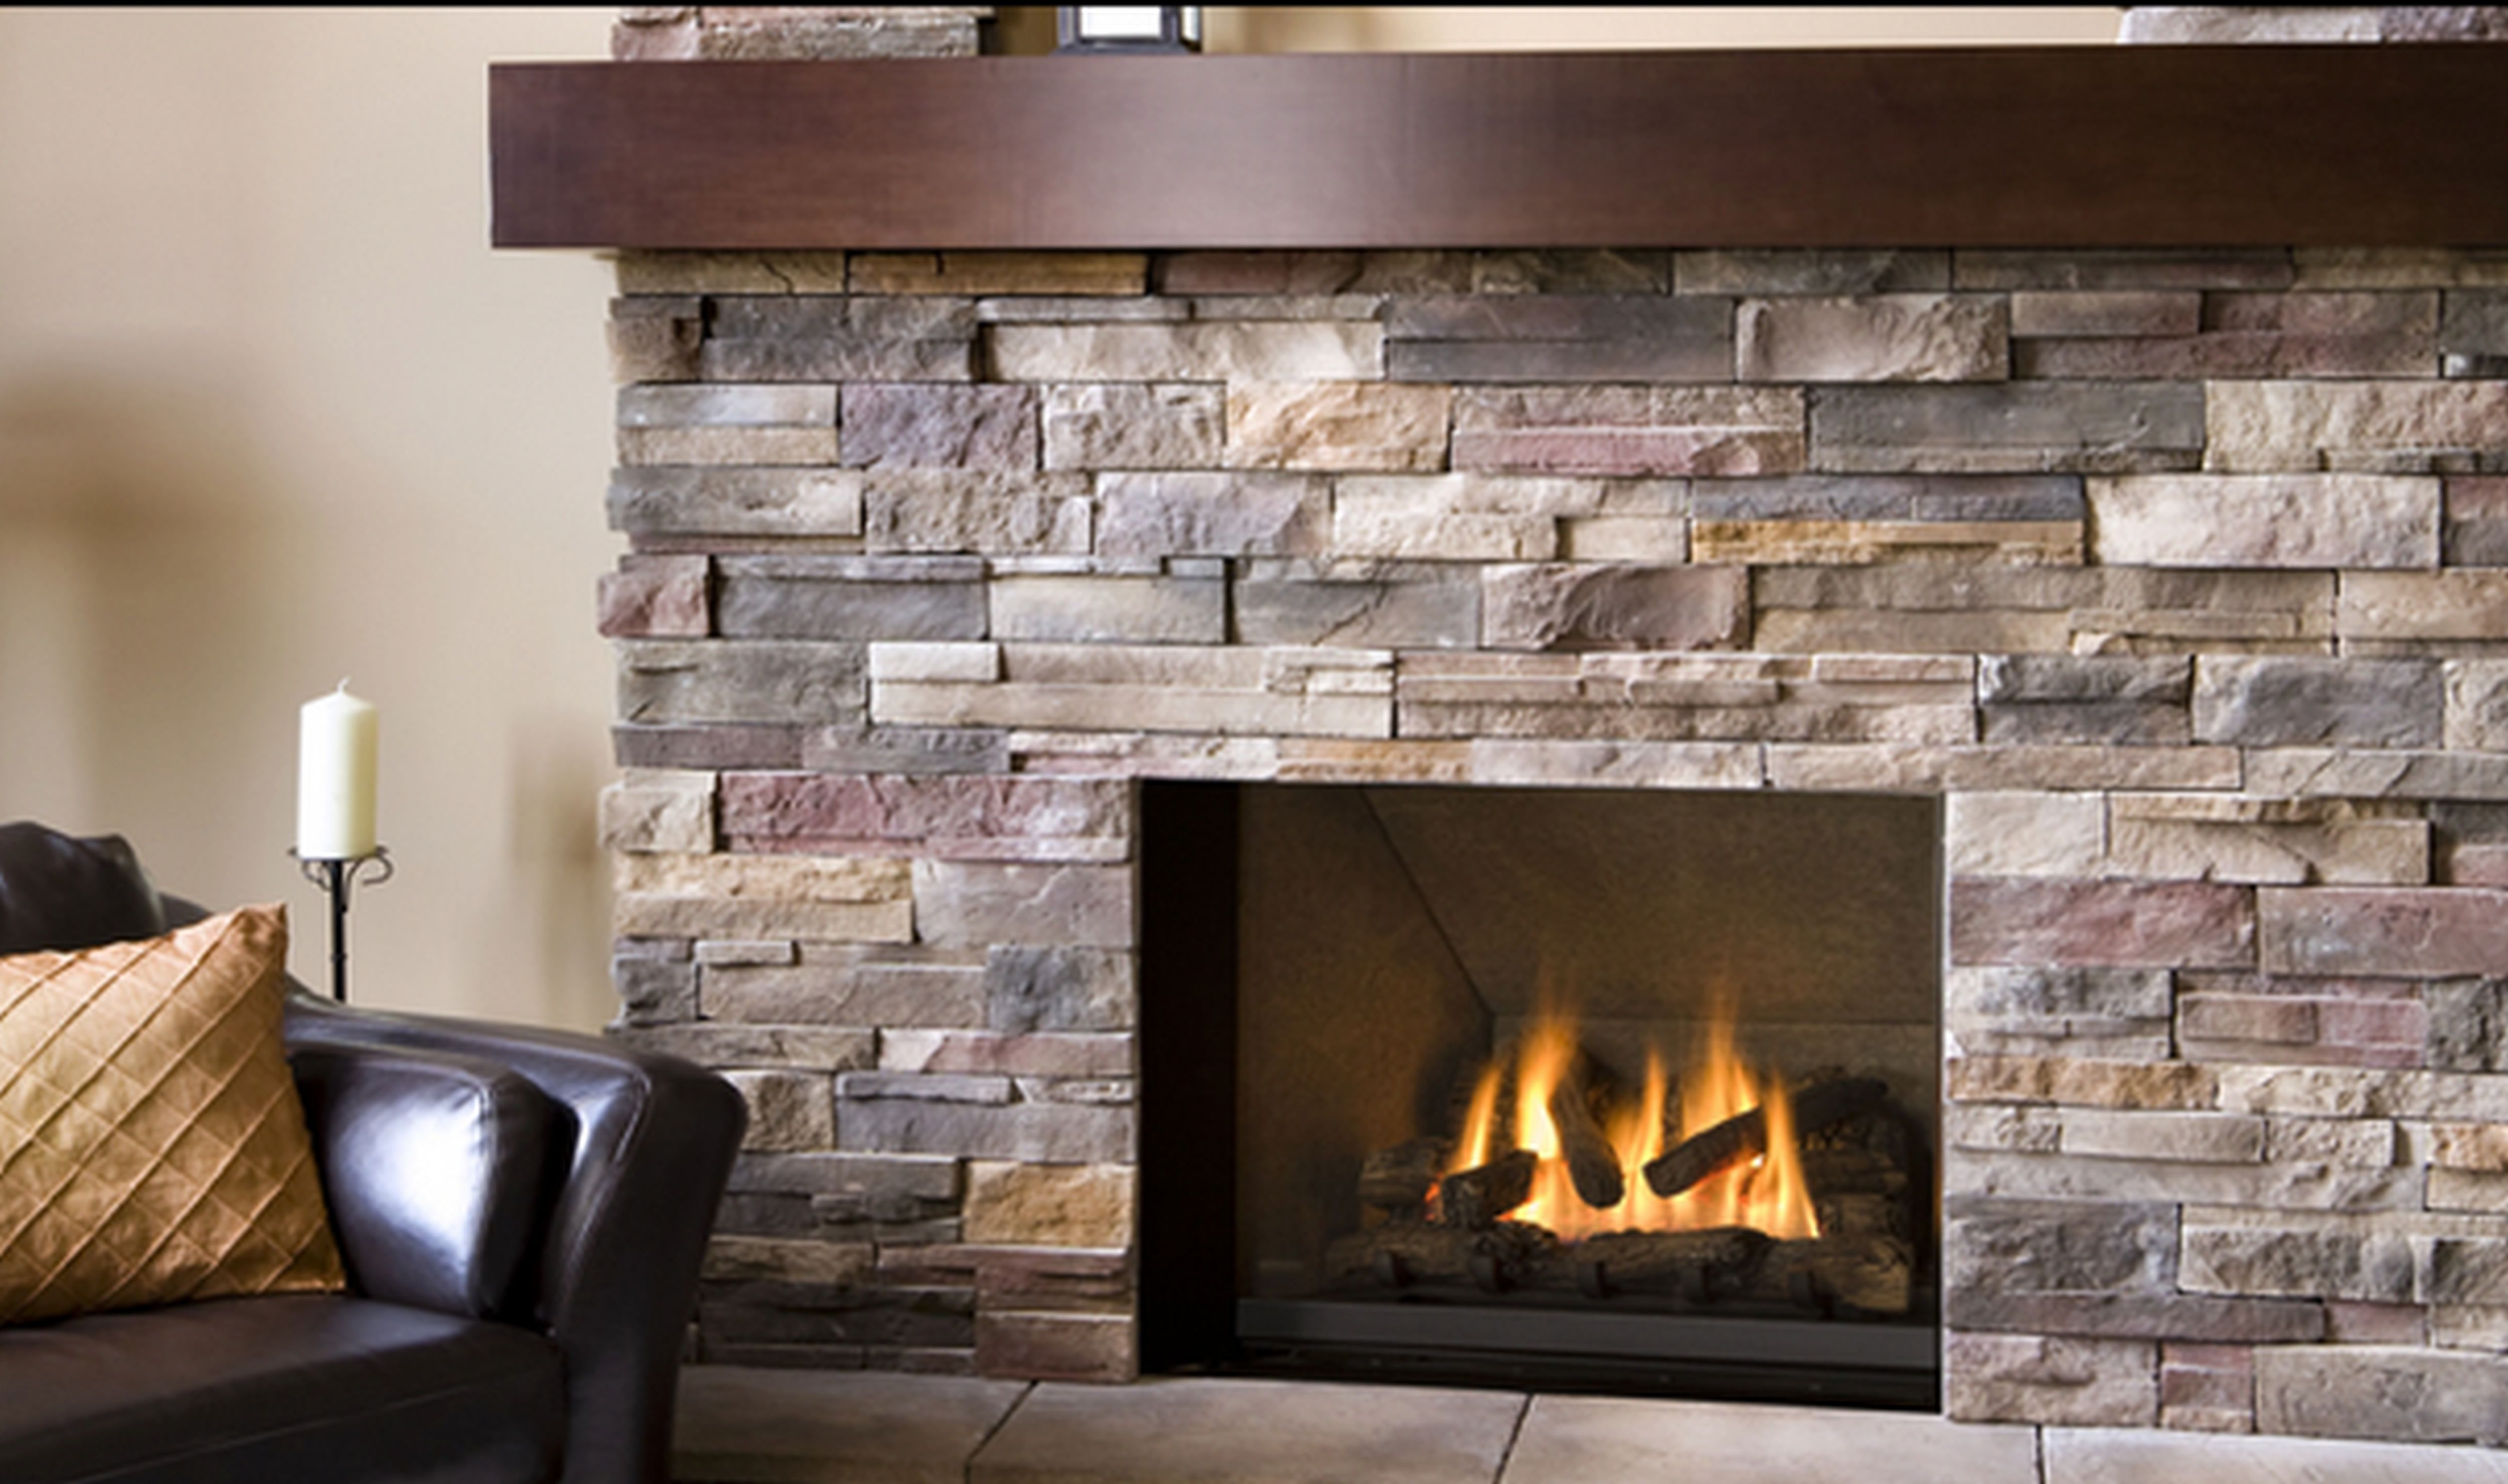 architecture-fireplace-stone-with-wooden-mantle-shelf-also-tile-floor-also-black-sofa-in-modern-home-living-room-with-infomal-style-of-design-ideas-beautiful-stone-fireplace-in-modern-cont